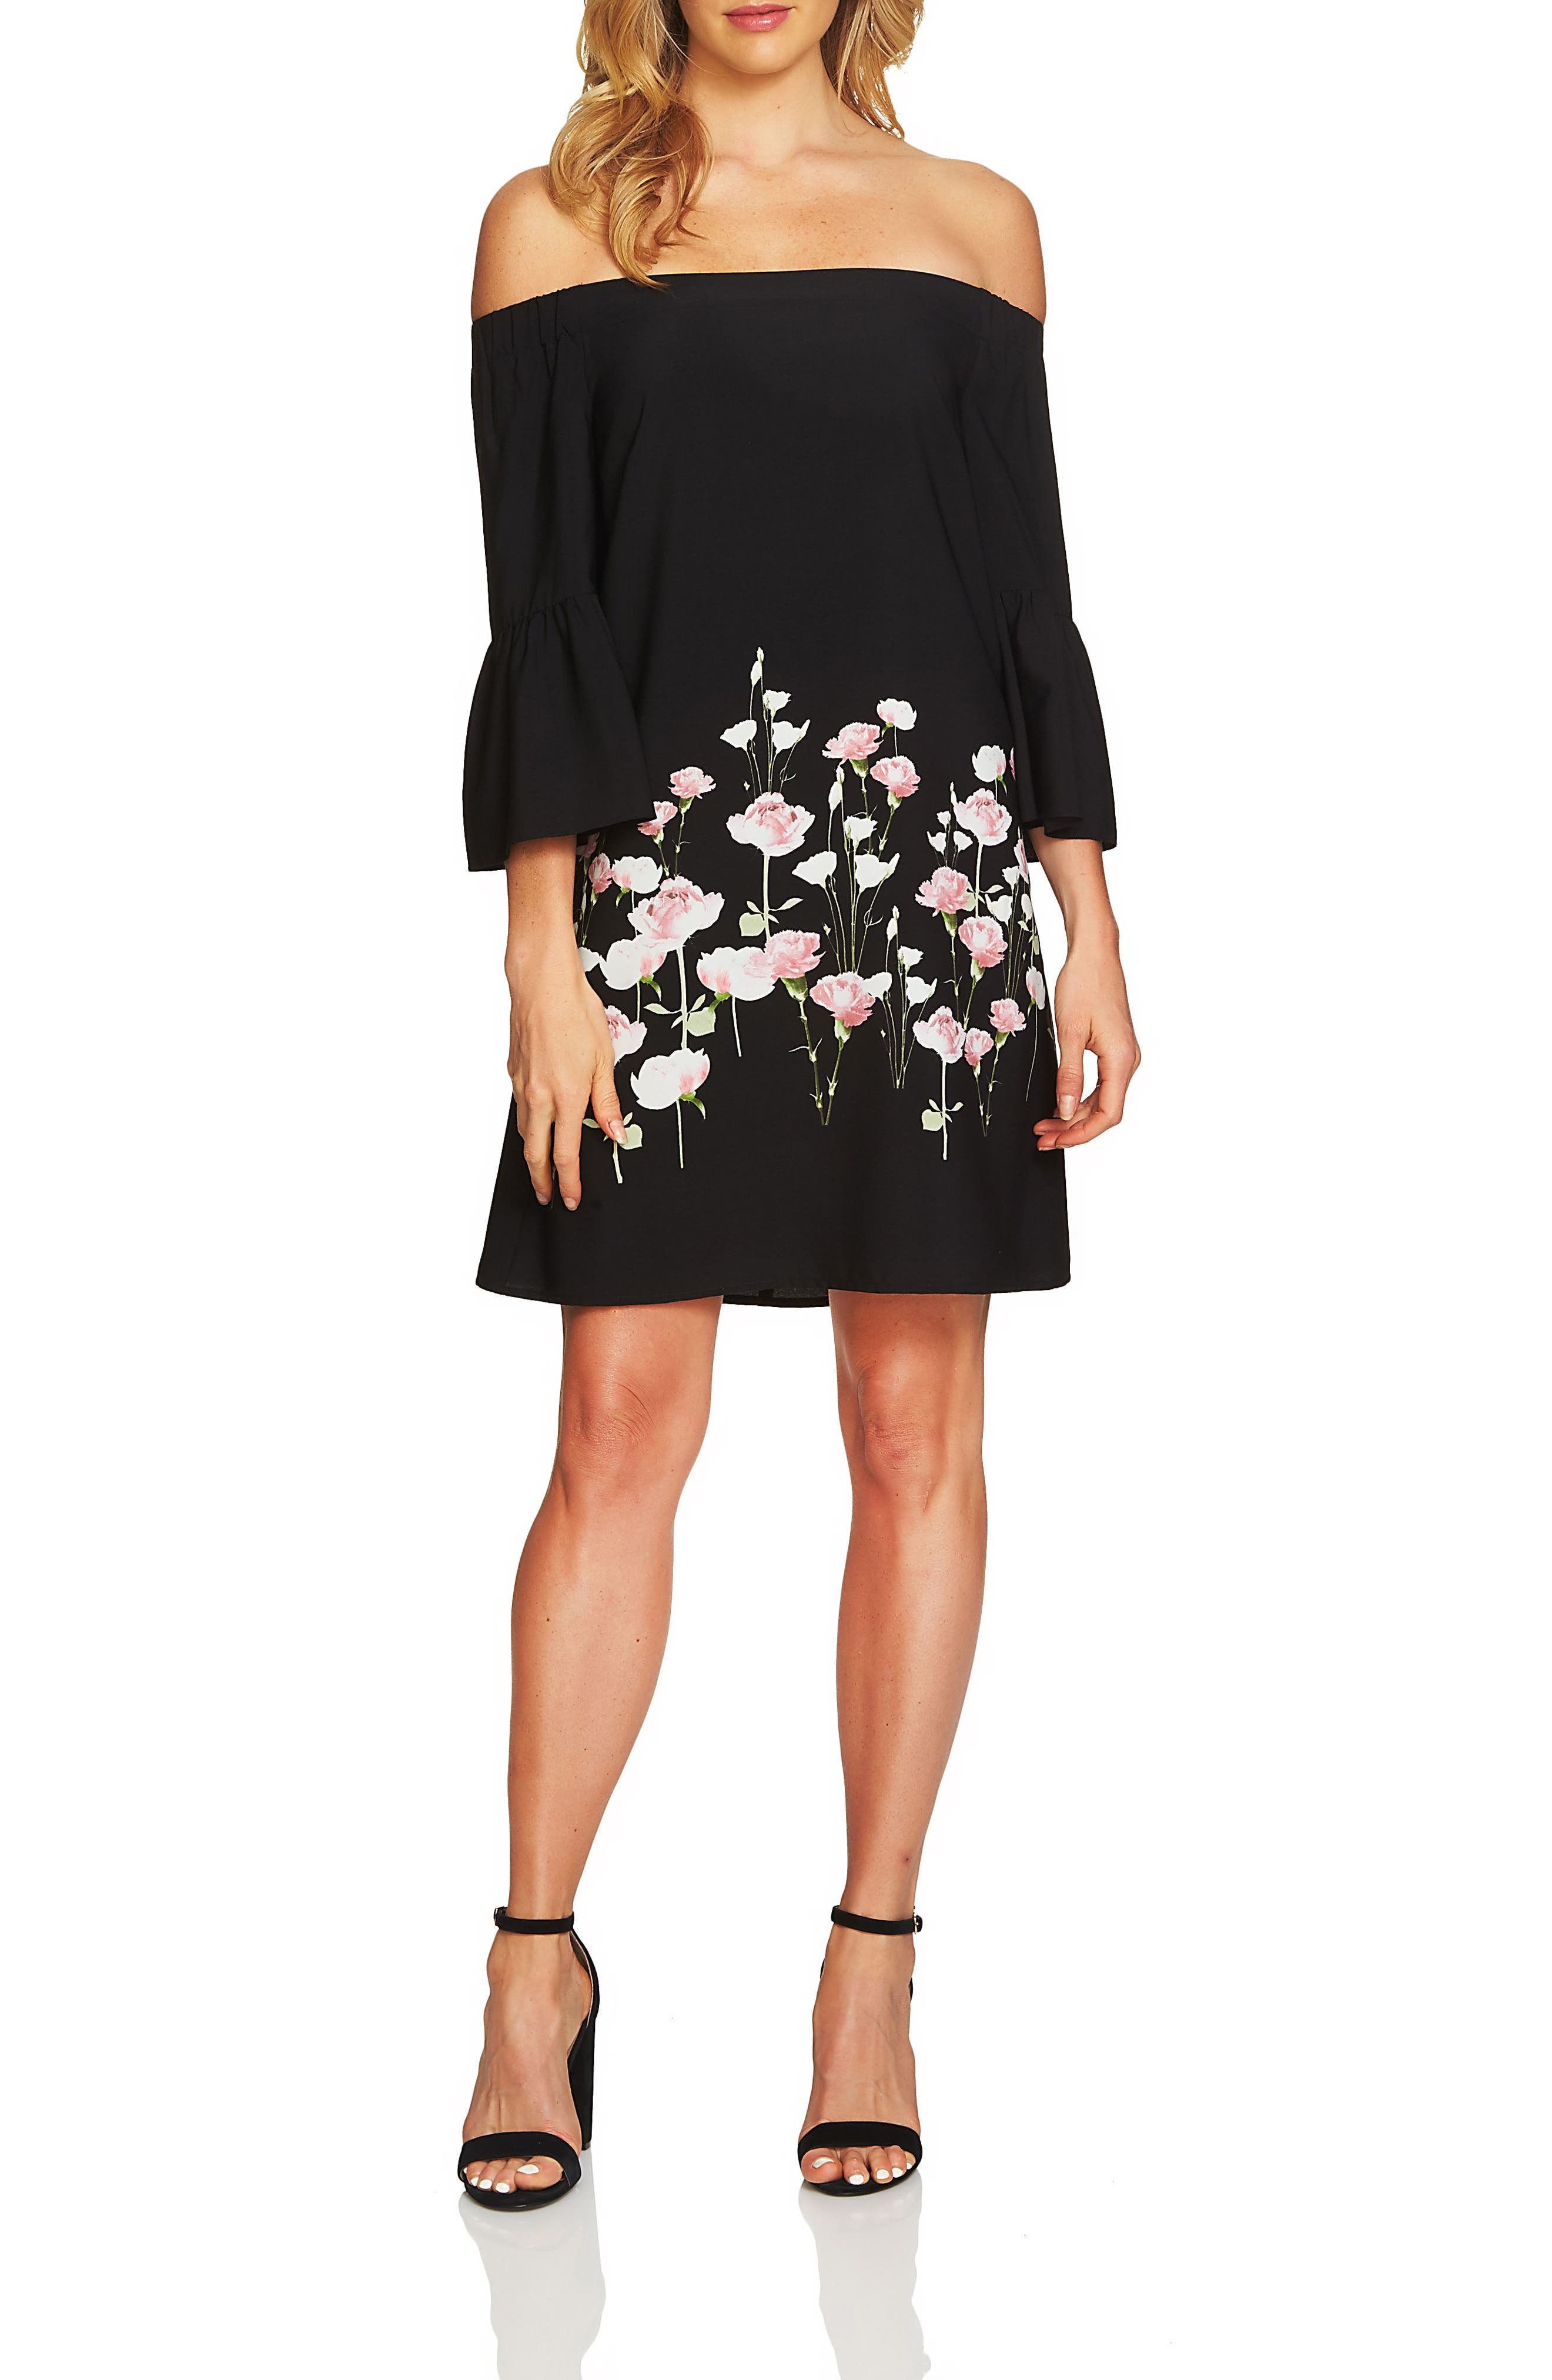 Cece Evelyn Off the Shoulder Shift Dress